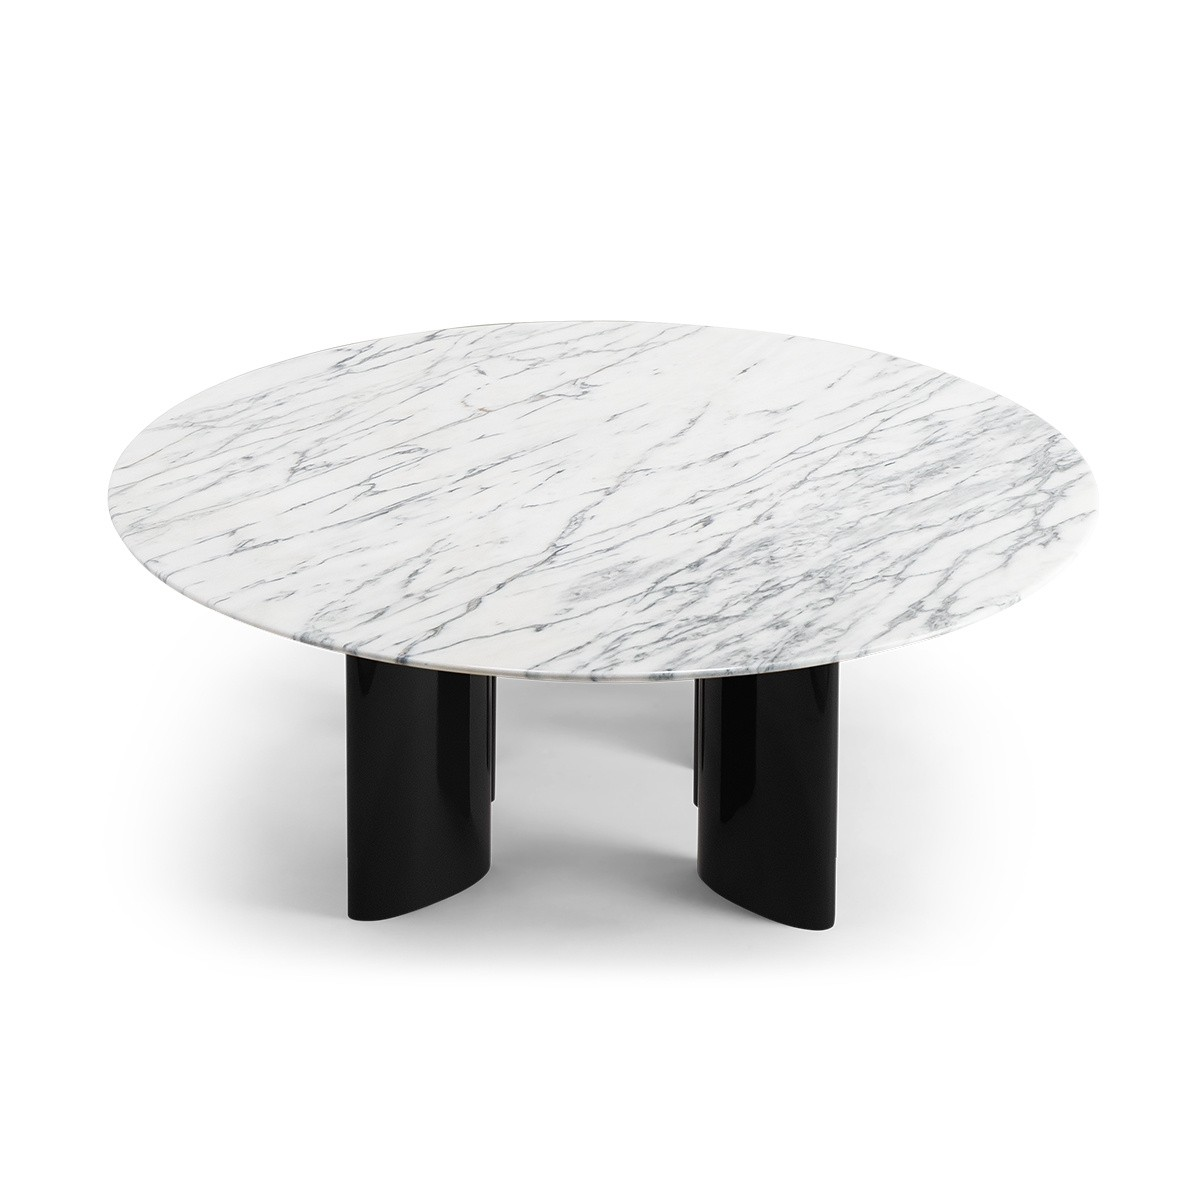 Carlotta Coffee Table, White Marble Top and Black Legs